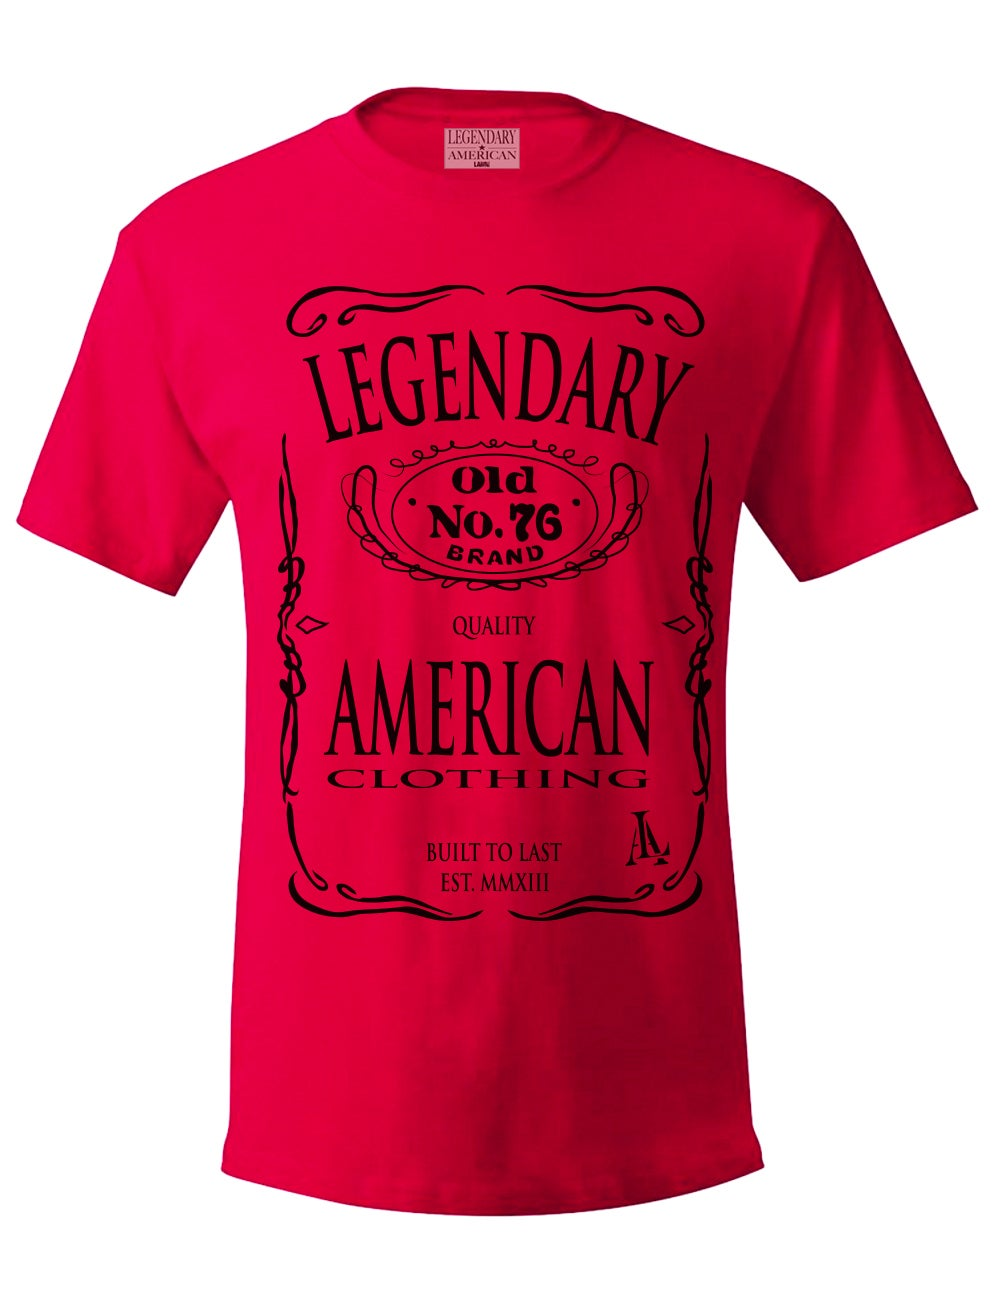 Image of Legendary American Old No. 76 tee in red